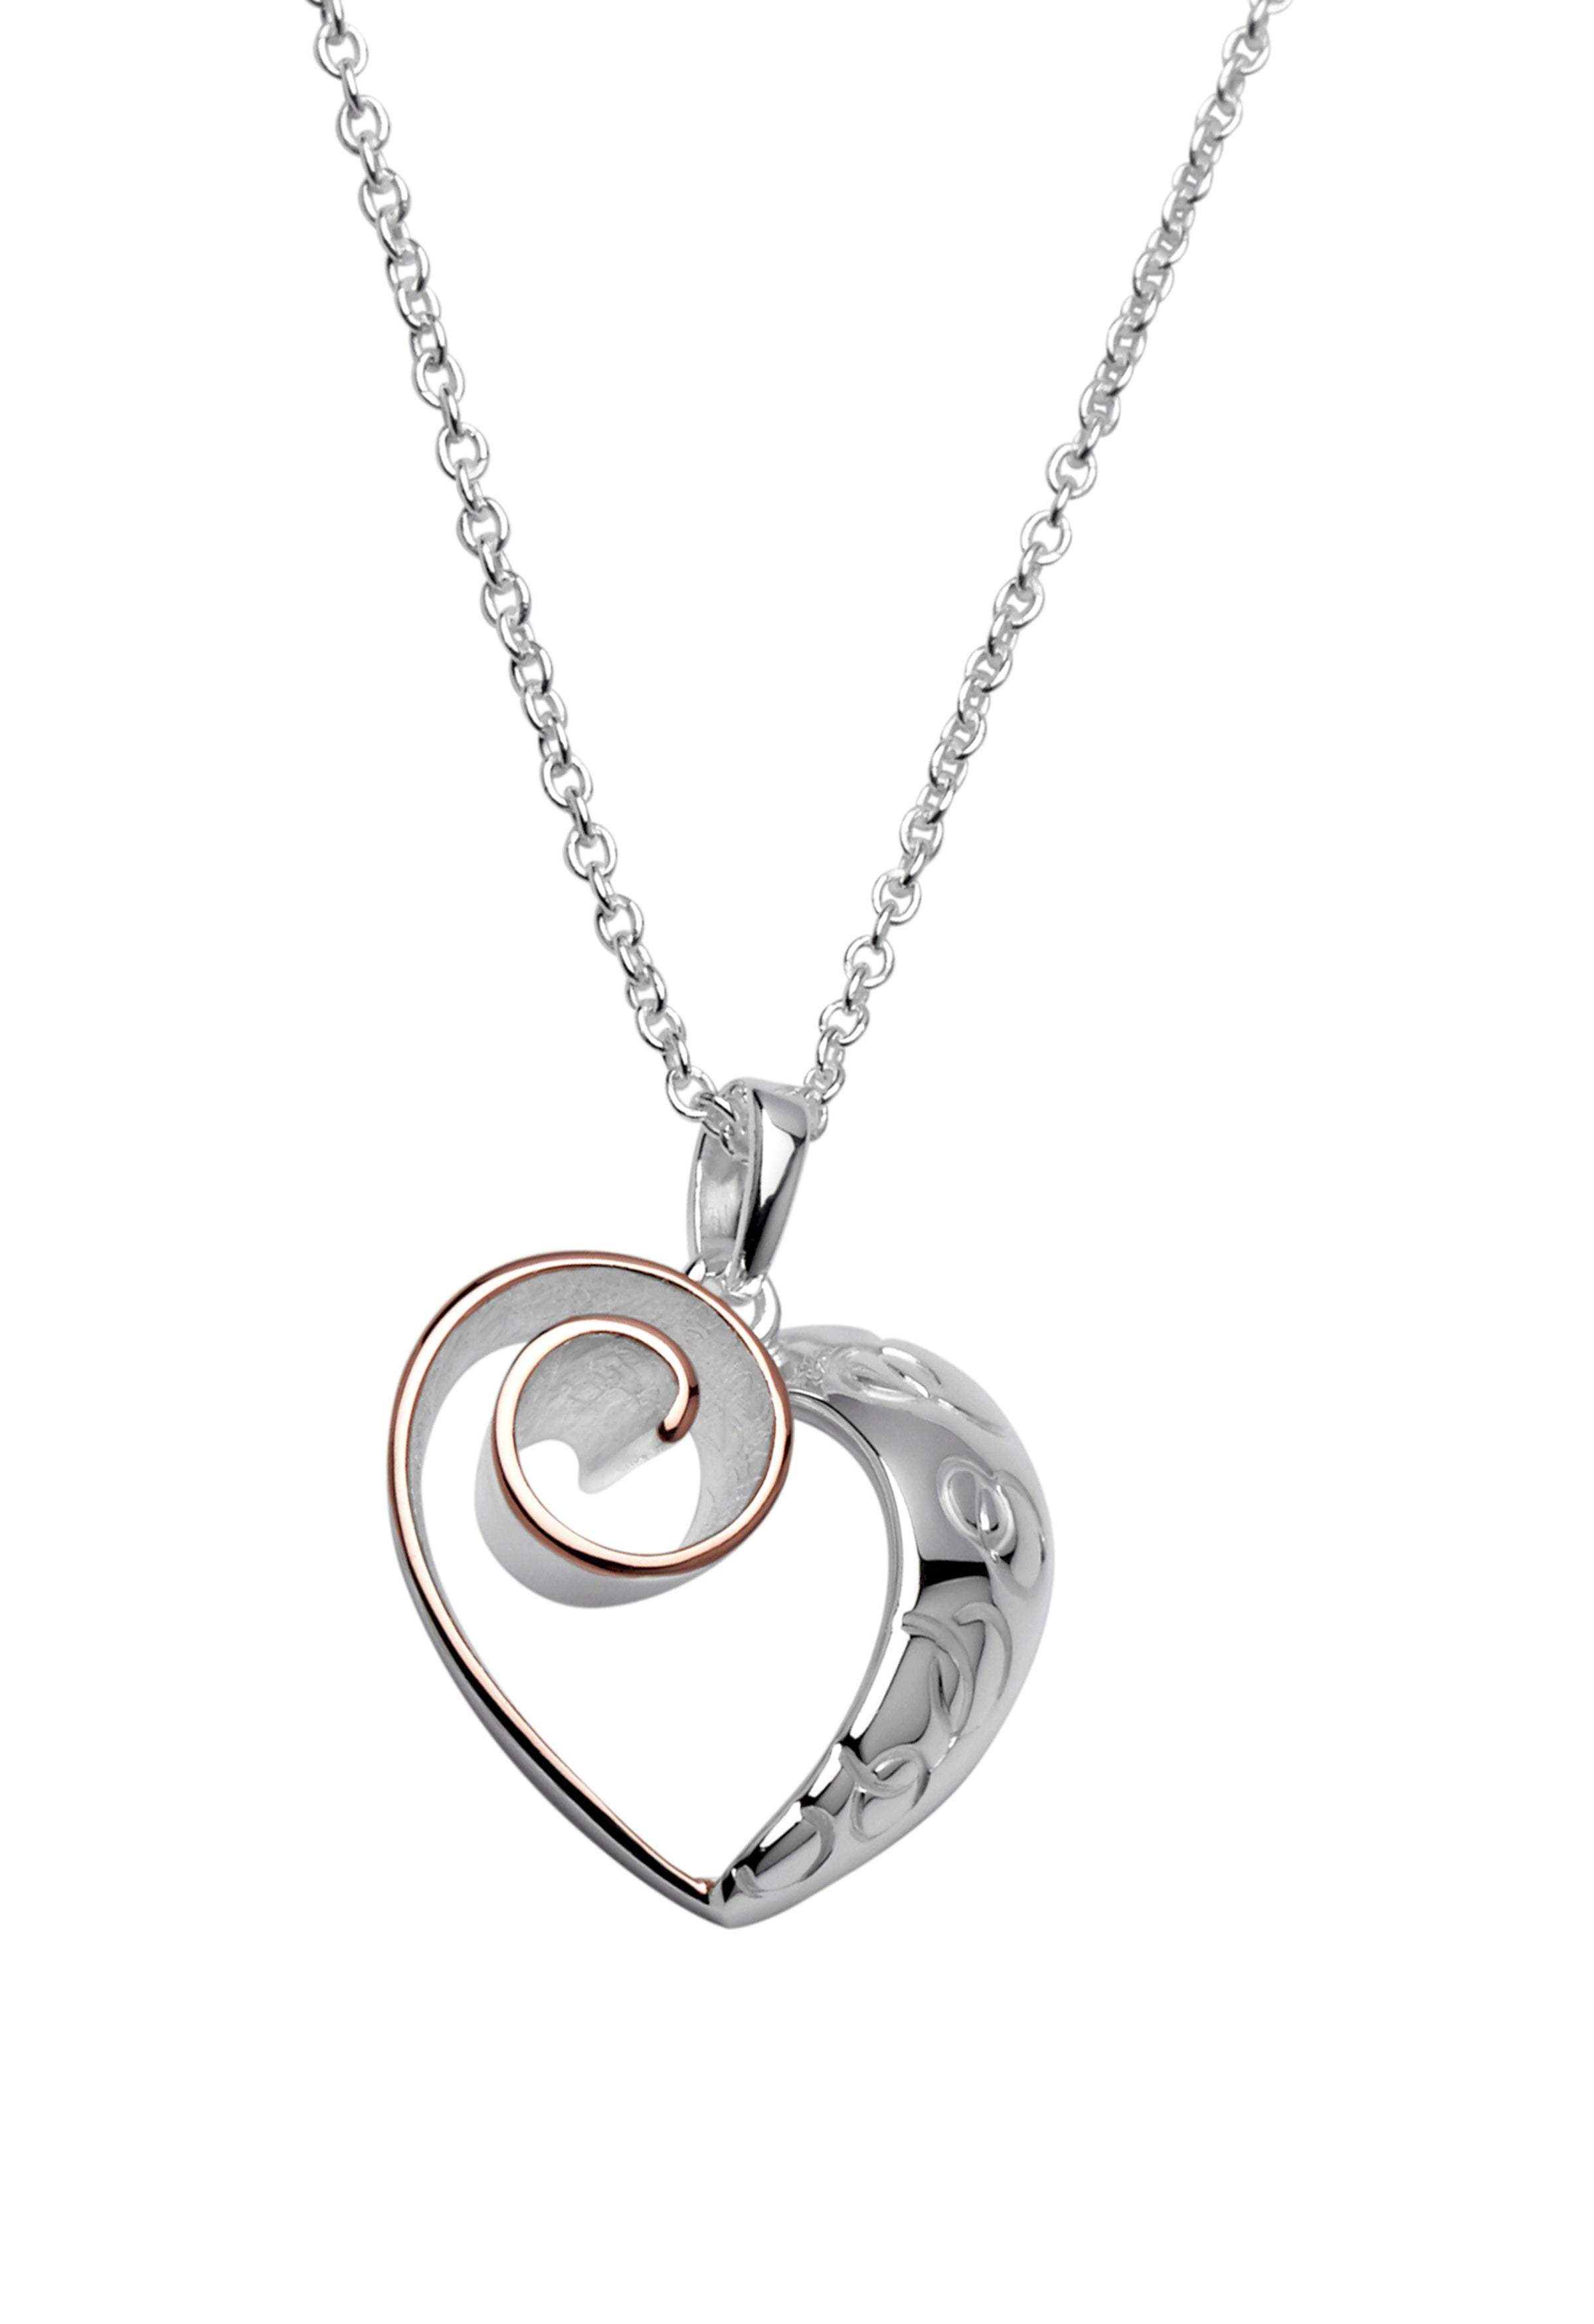 Sterling Silver and Rose Gold Plate Heart Pendant and Chain